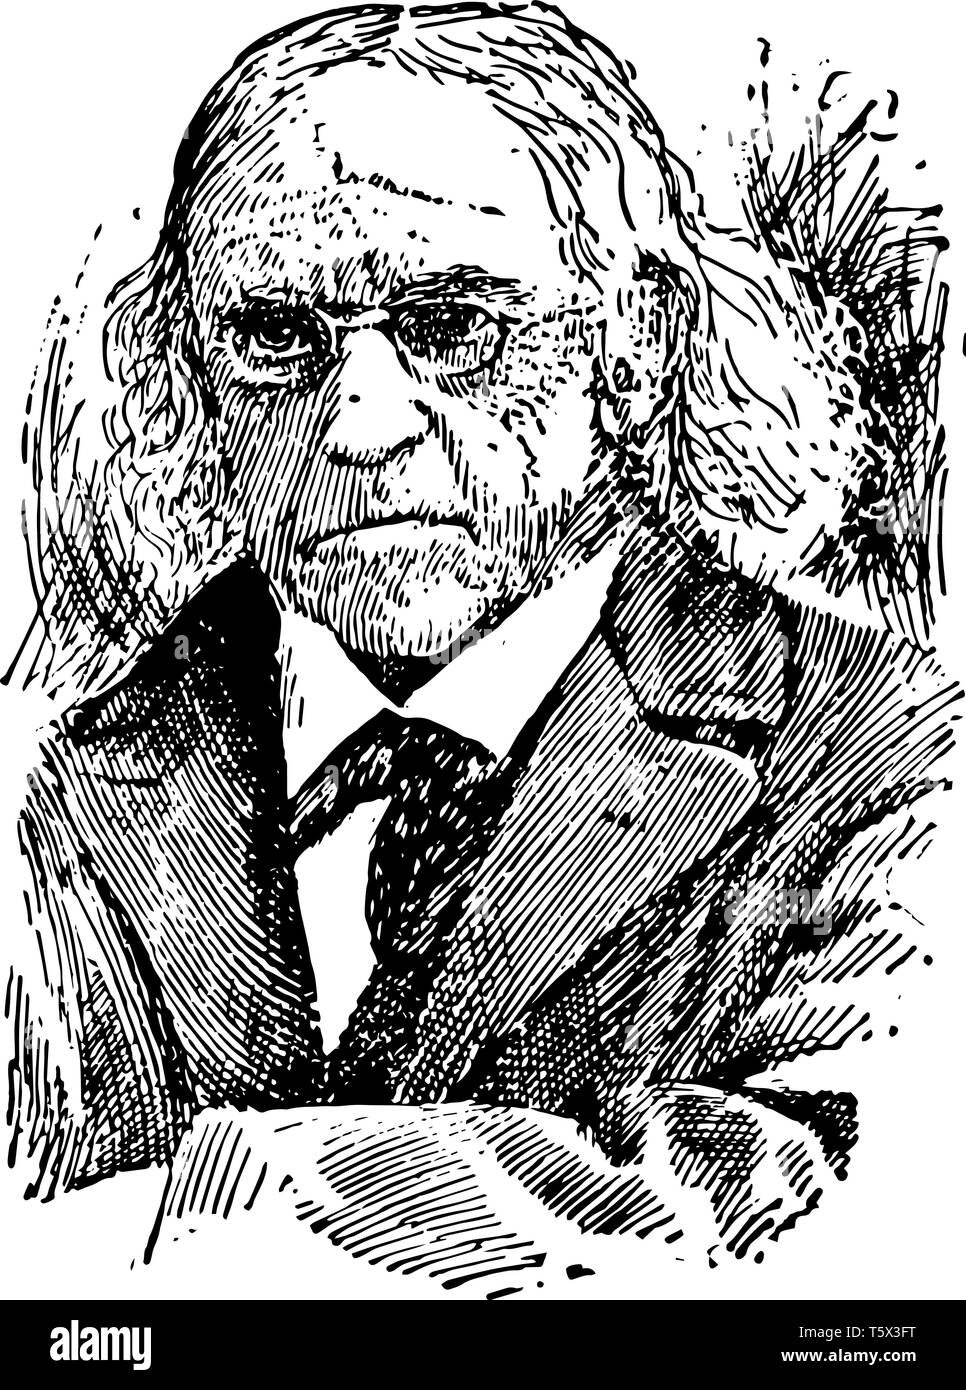 Theodor Mommsen 1817 to 1903 he was a German classical scholar historian jurist journalist politician archaeologist and writer vintage line drawing or - Stock Vector